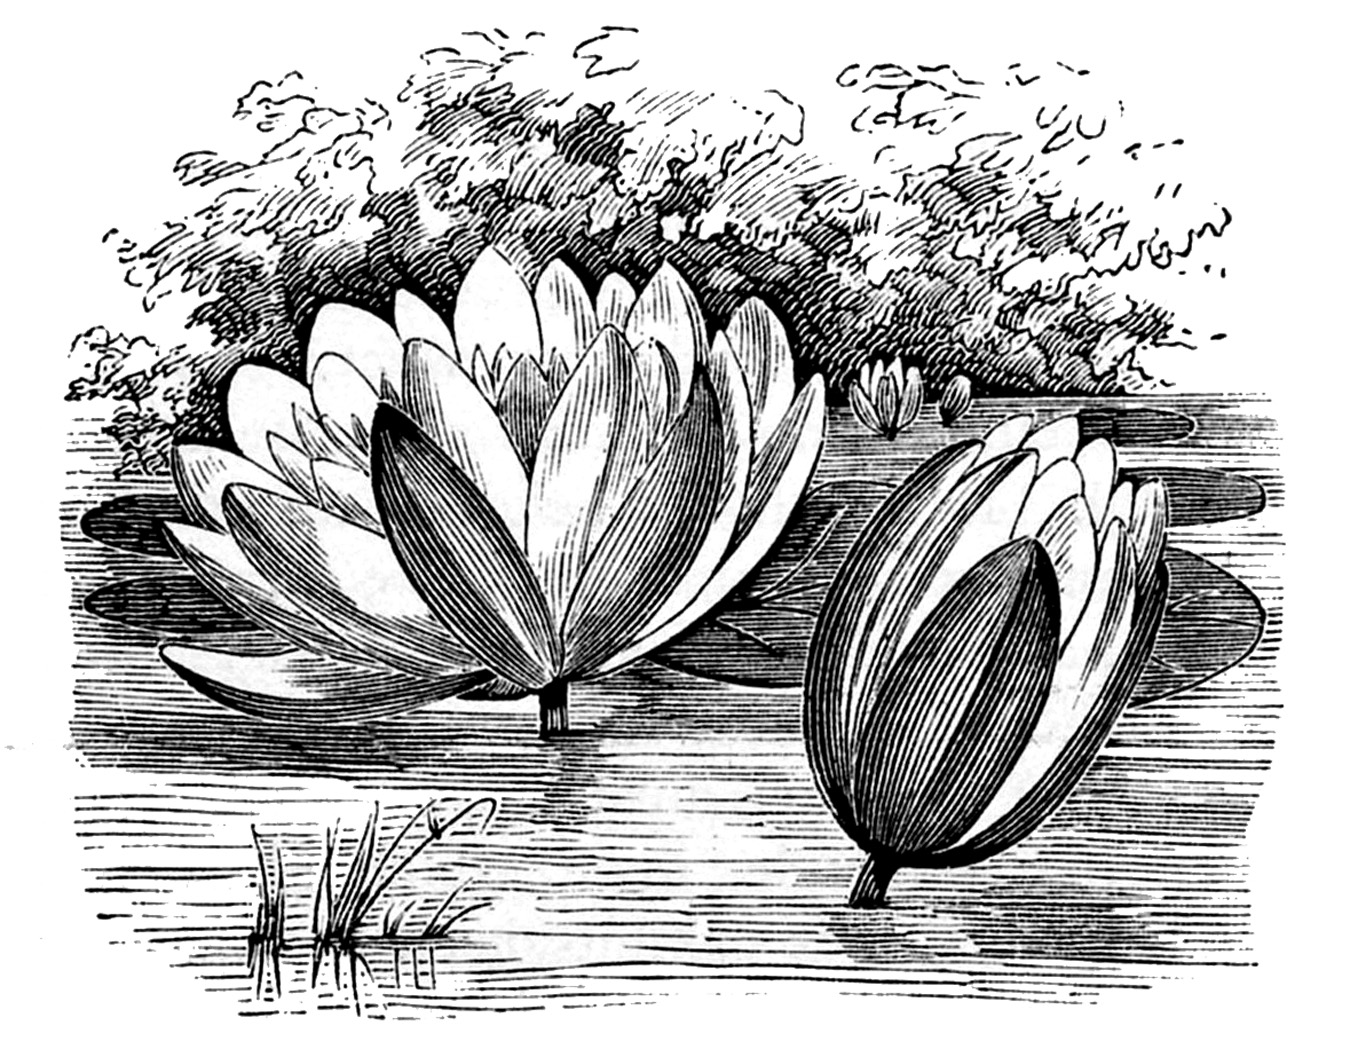 12 Water Lily Images - Lotus Flowers - The Graphics Fairy